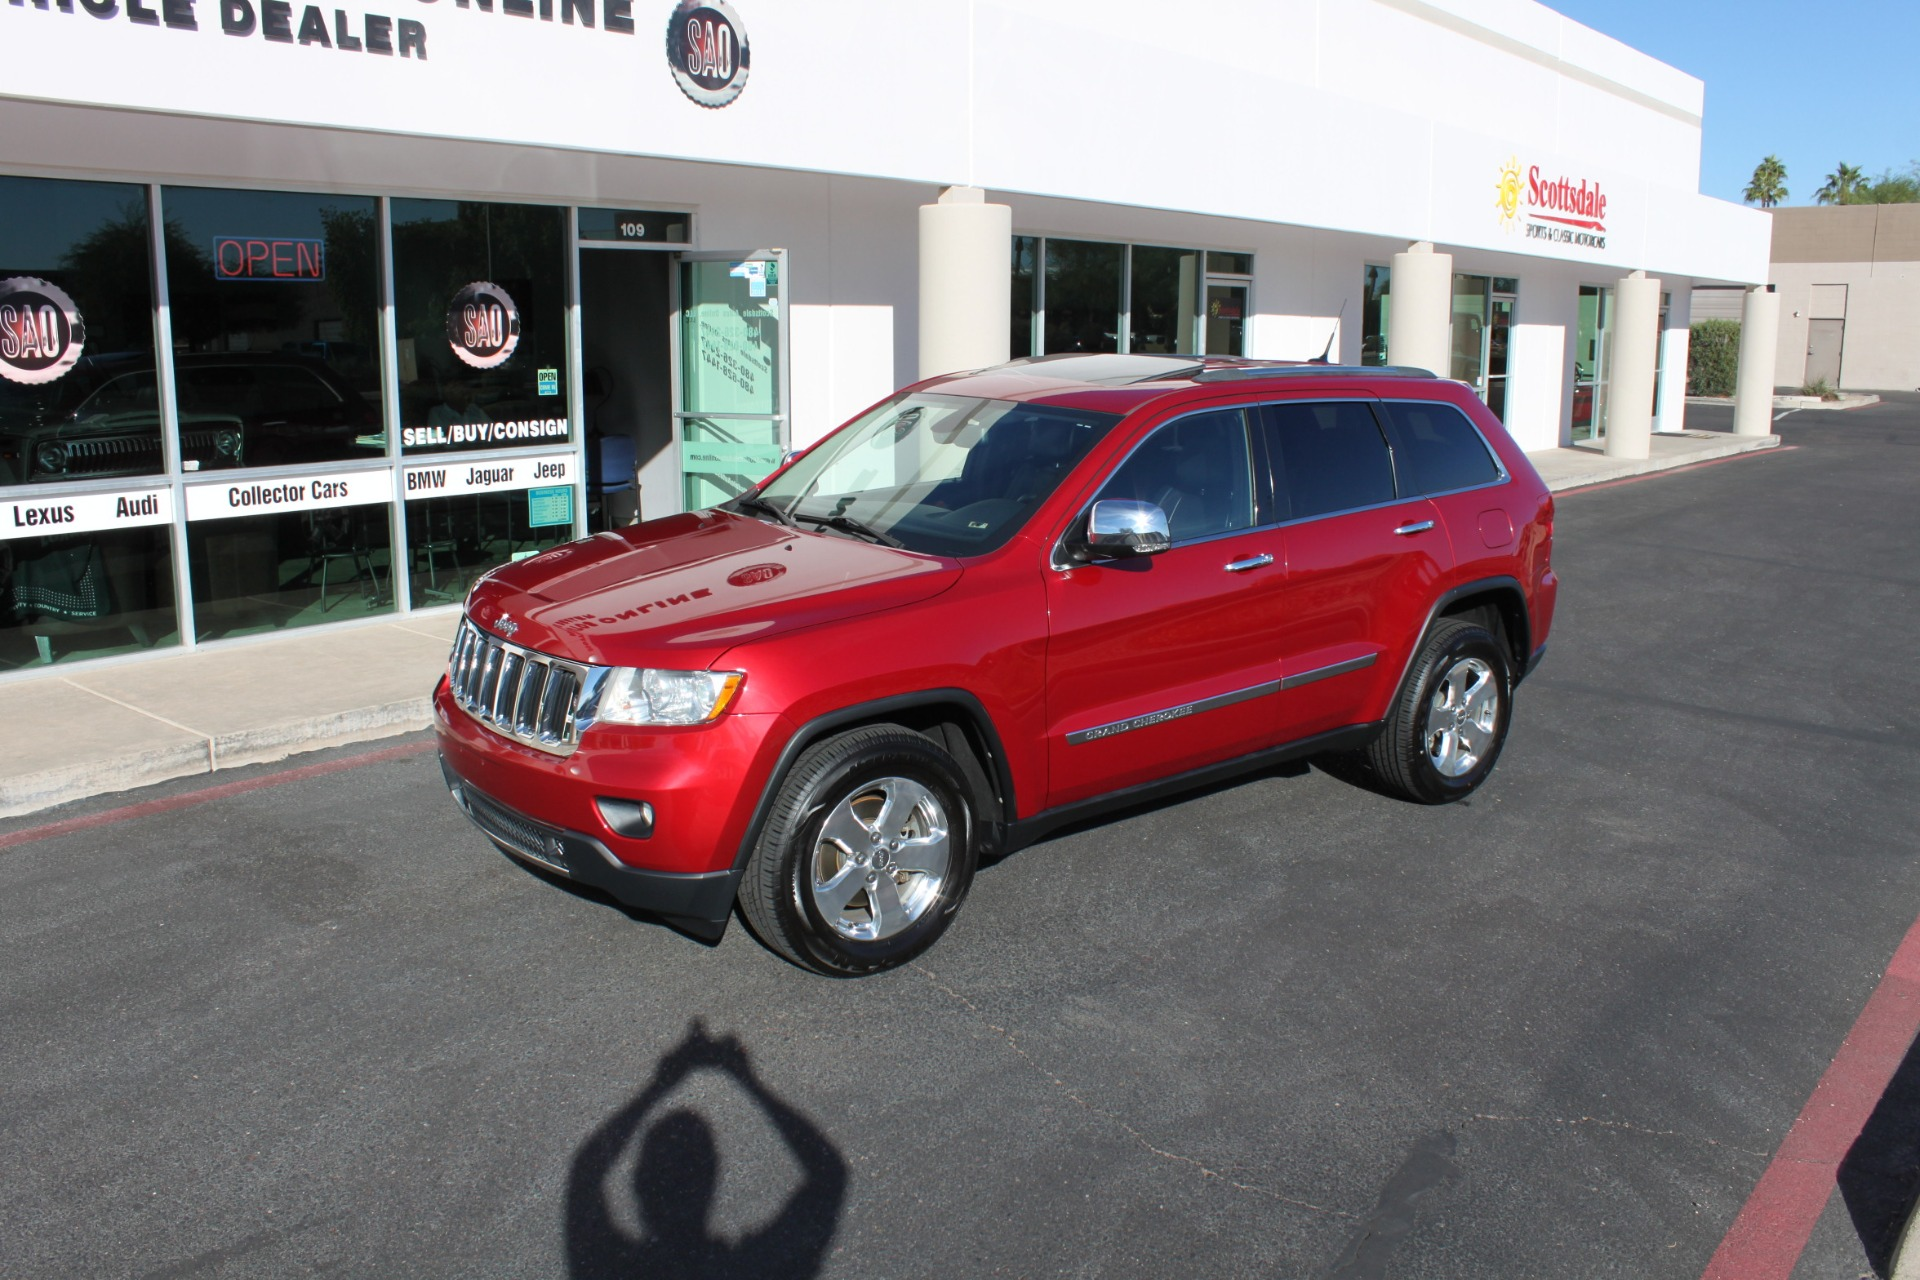 Used-2011-Jeep-Grand-Cherokee-Limited-Acura